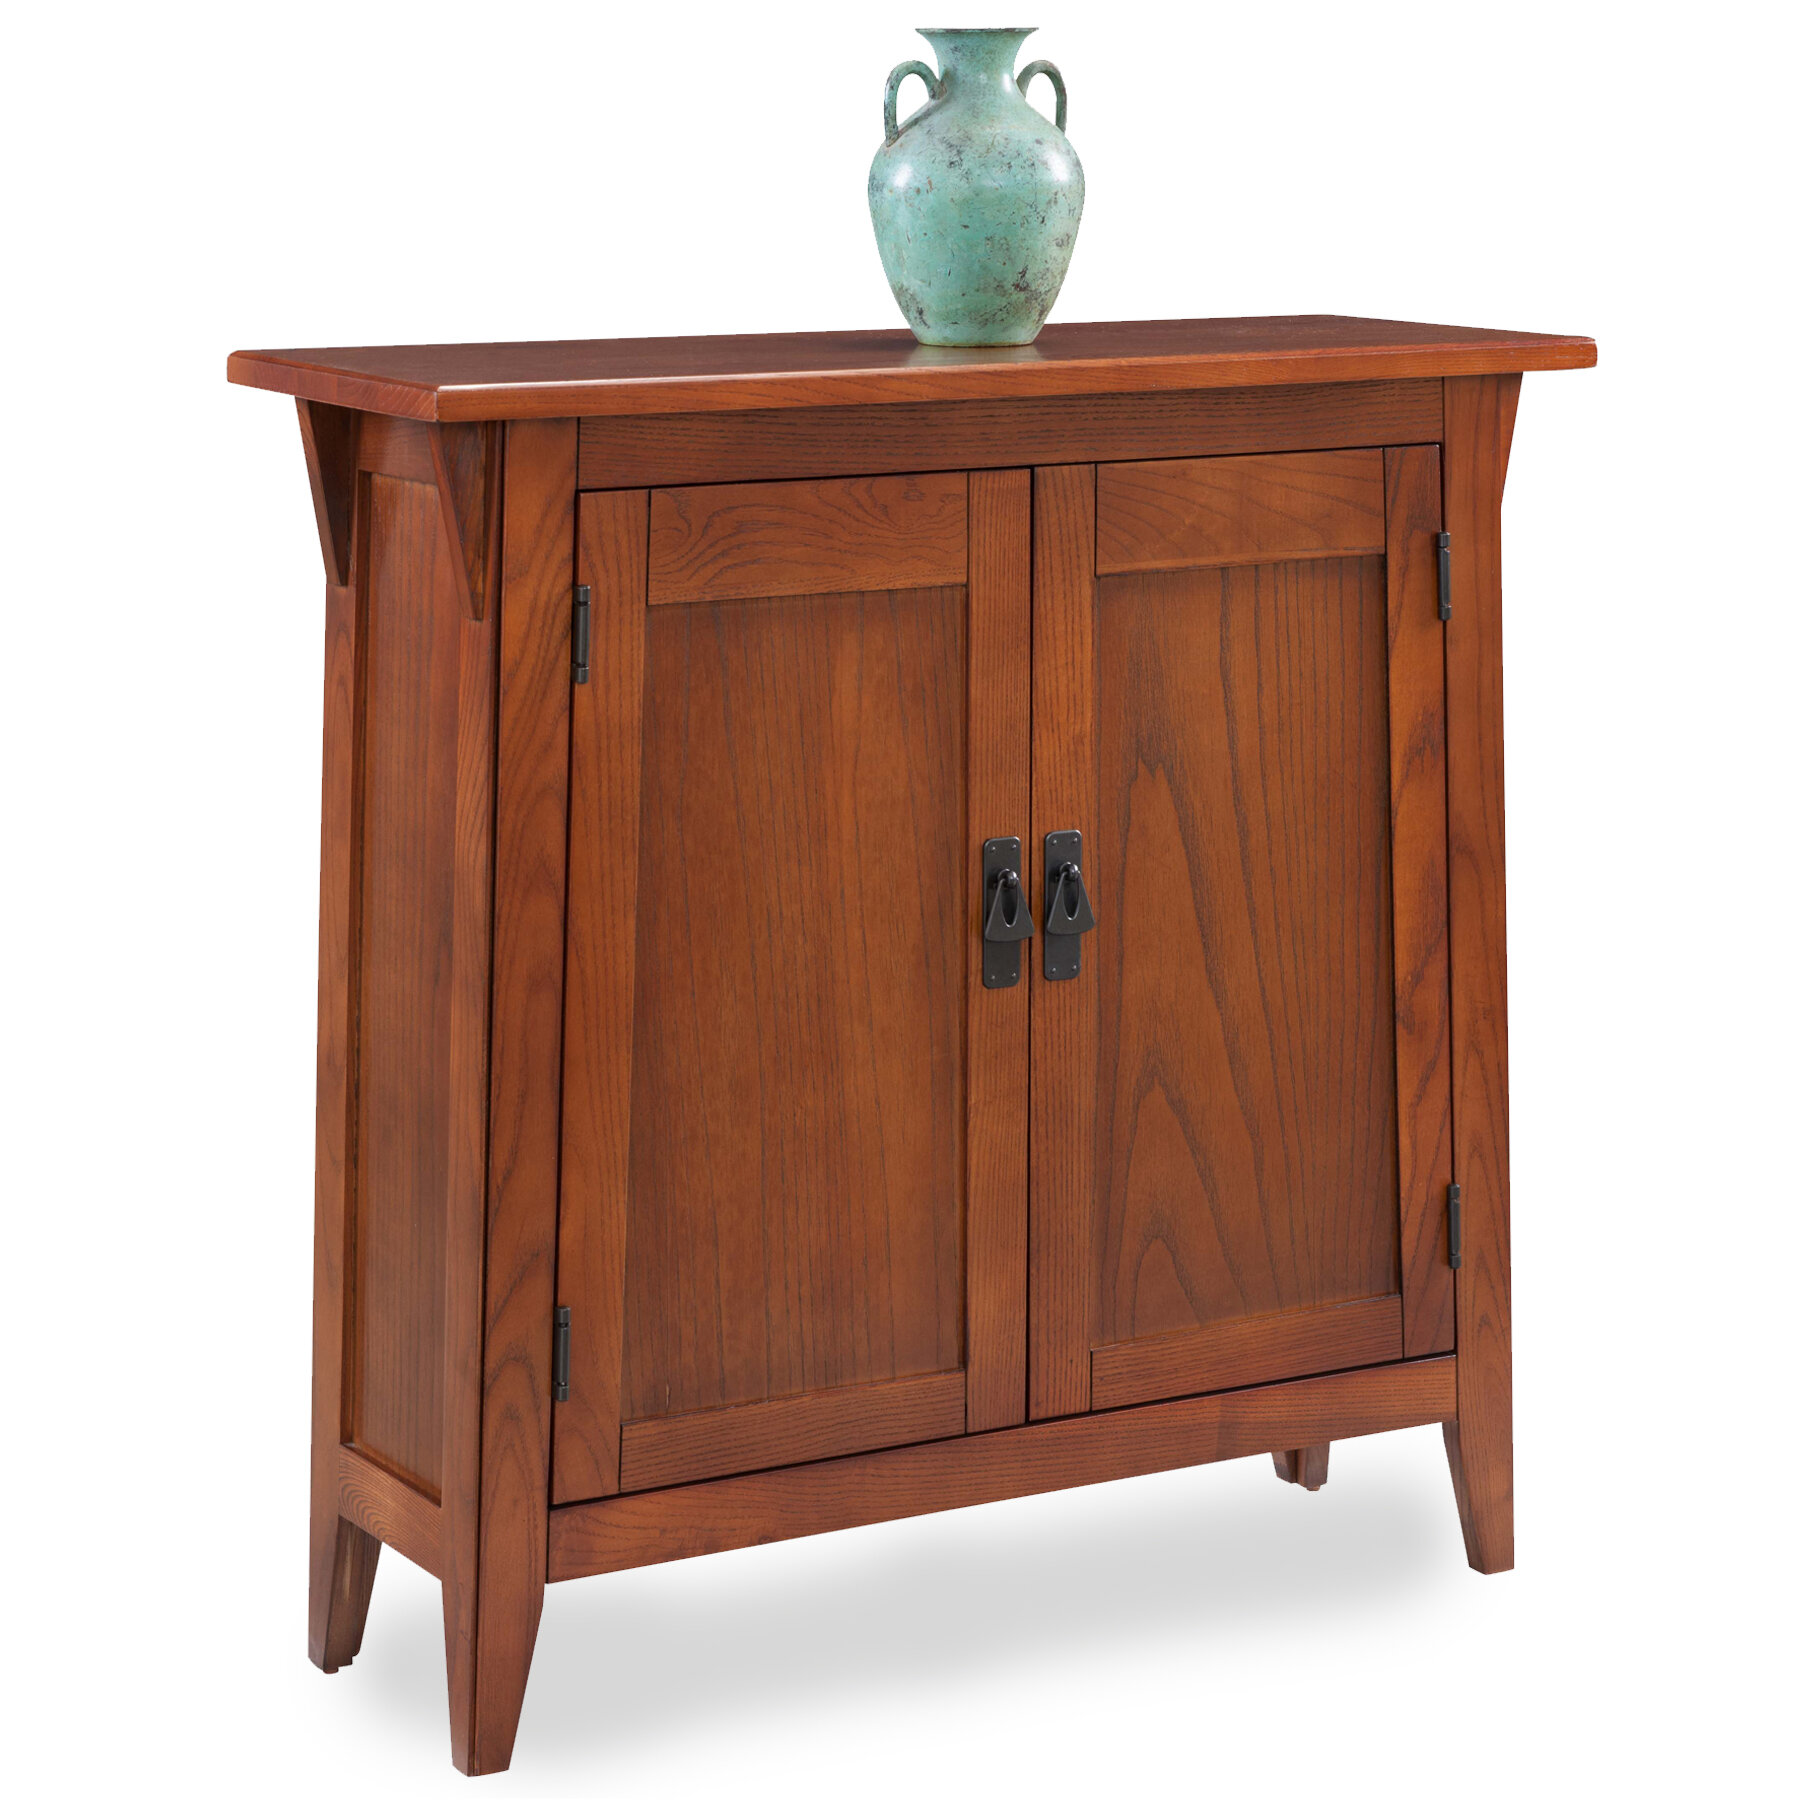 Foyer Cabinets: Favorite Finds Mission Foyer Cabinet/Hall Stand